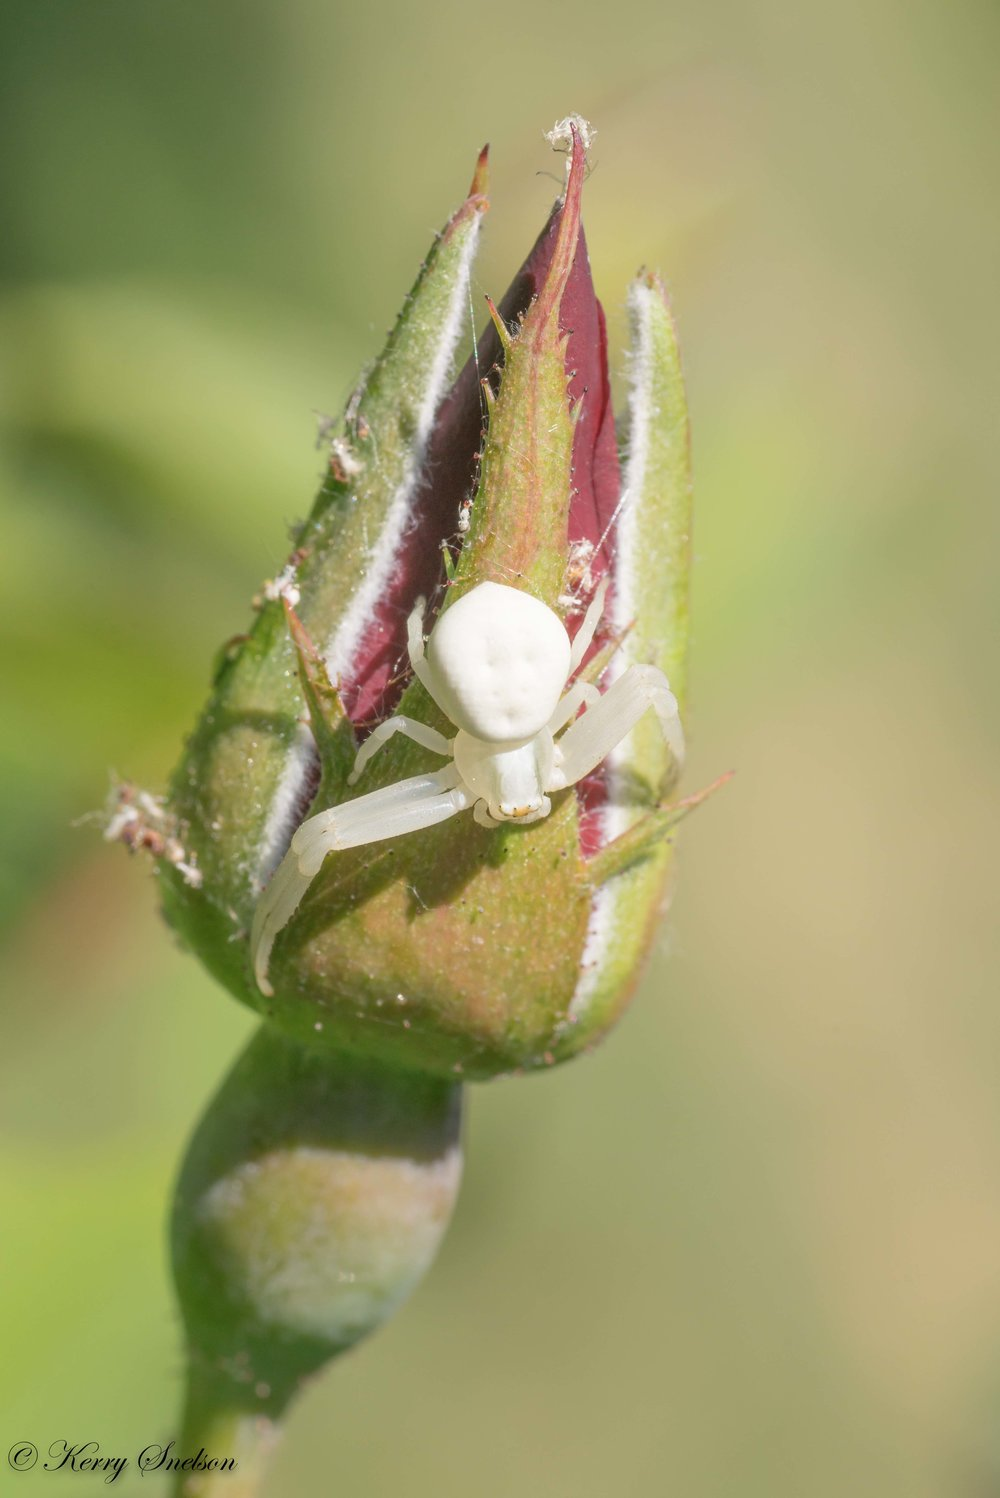 Crab Spider on Bud